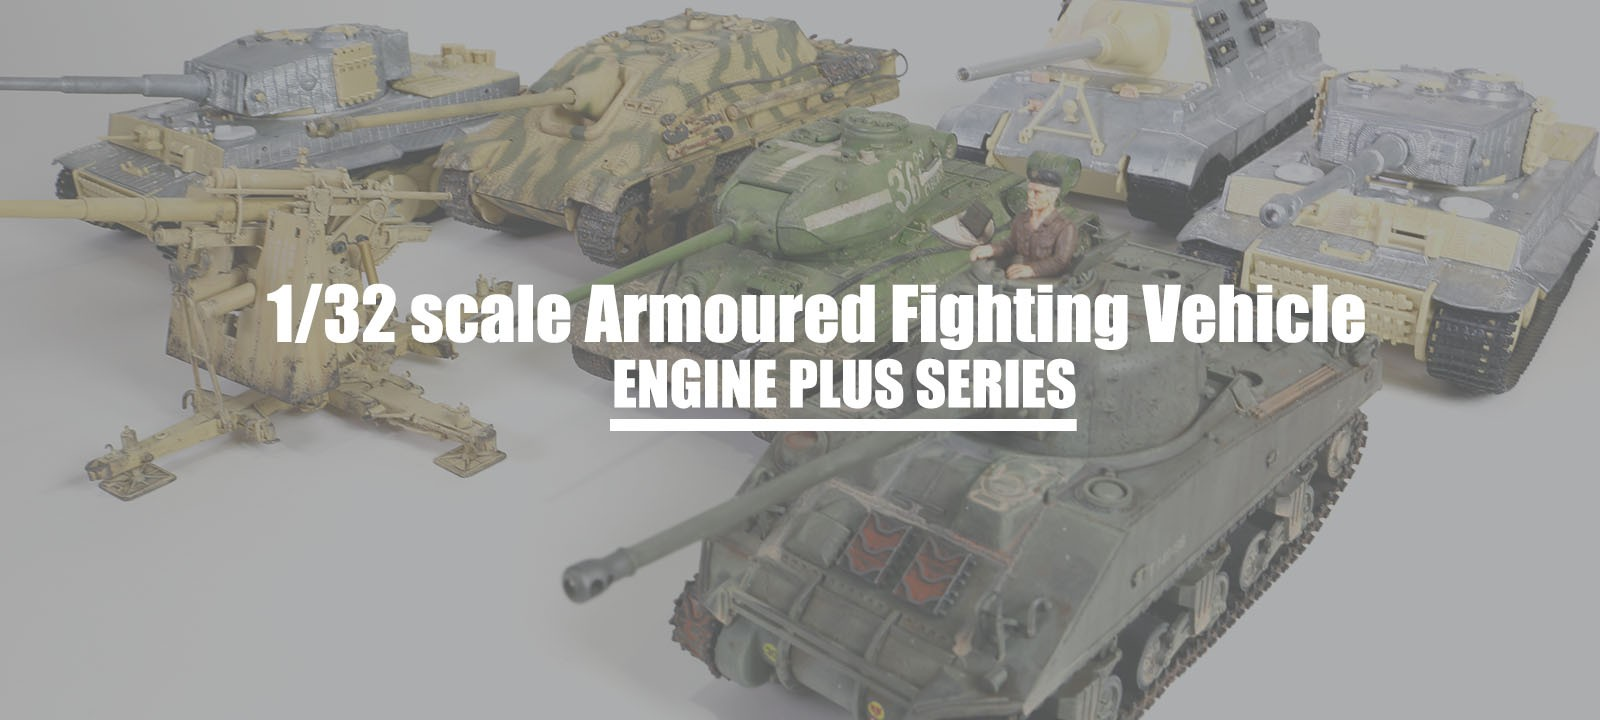 32nd scale Armoured fighting vehicle (Engine Plus series)